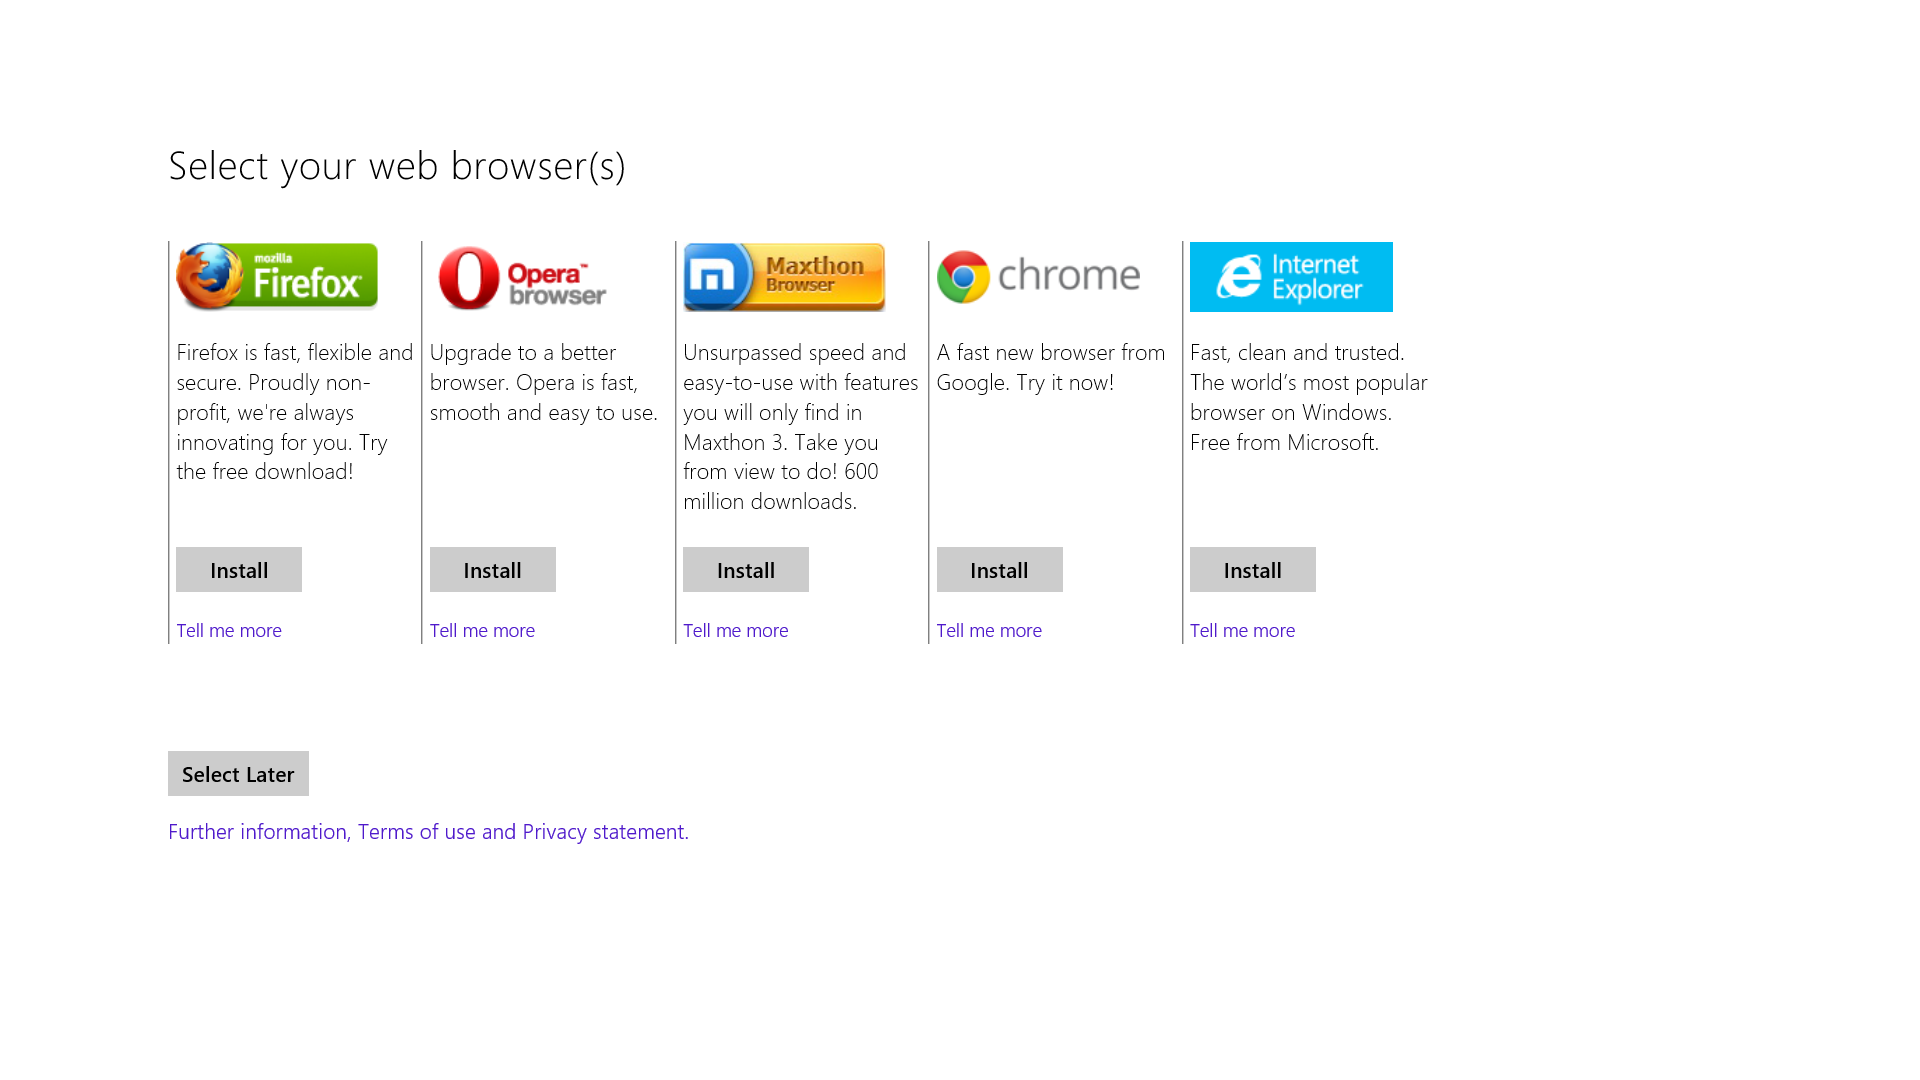 Screenshot 16 Microsoft Windows 8.1 review: A more customizable, coherent experience with a nod to desktop diehards